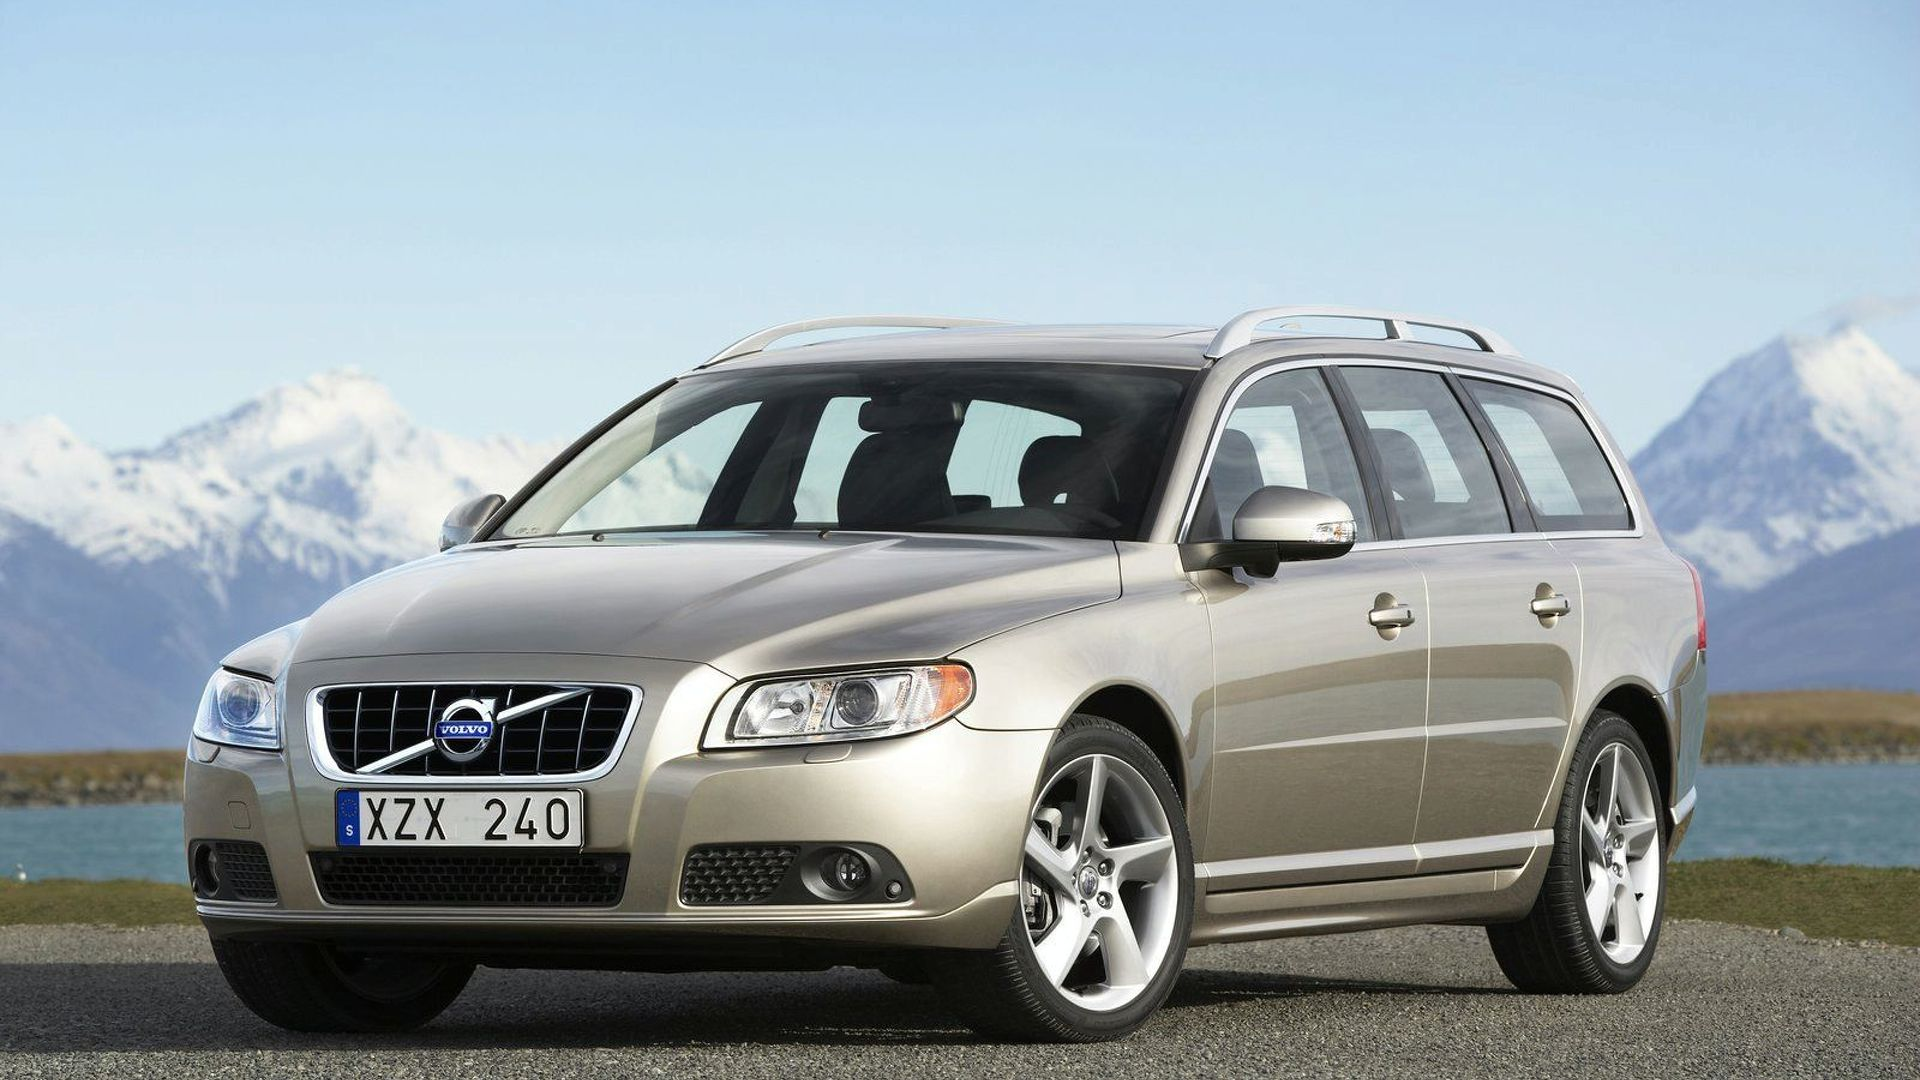 Americans Hate Wagons - Volvo V70 to Get Axe in U S